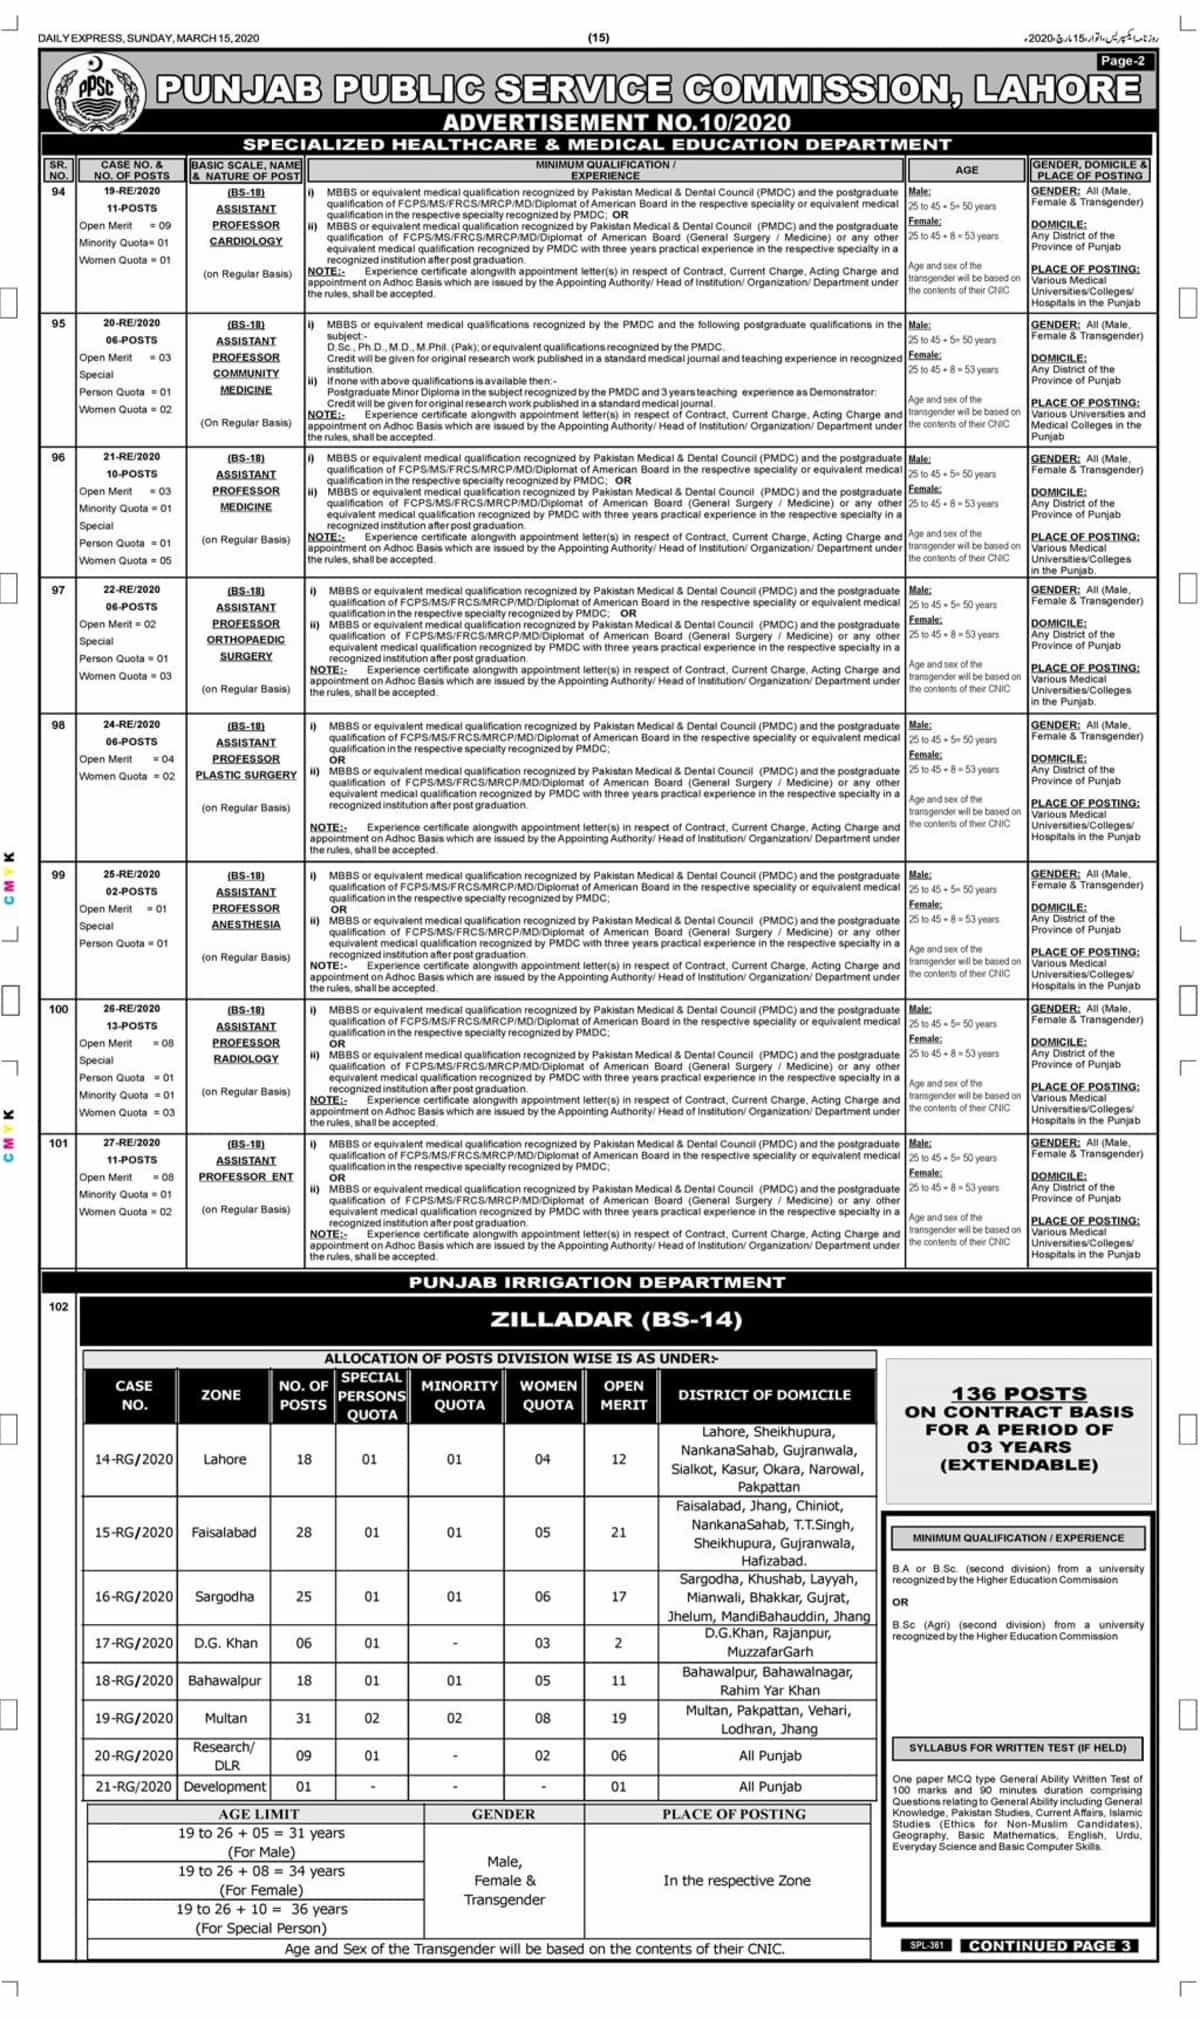 PPSC Jobs 2020 Advertisement No 10 Apply Online Latest 2